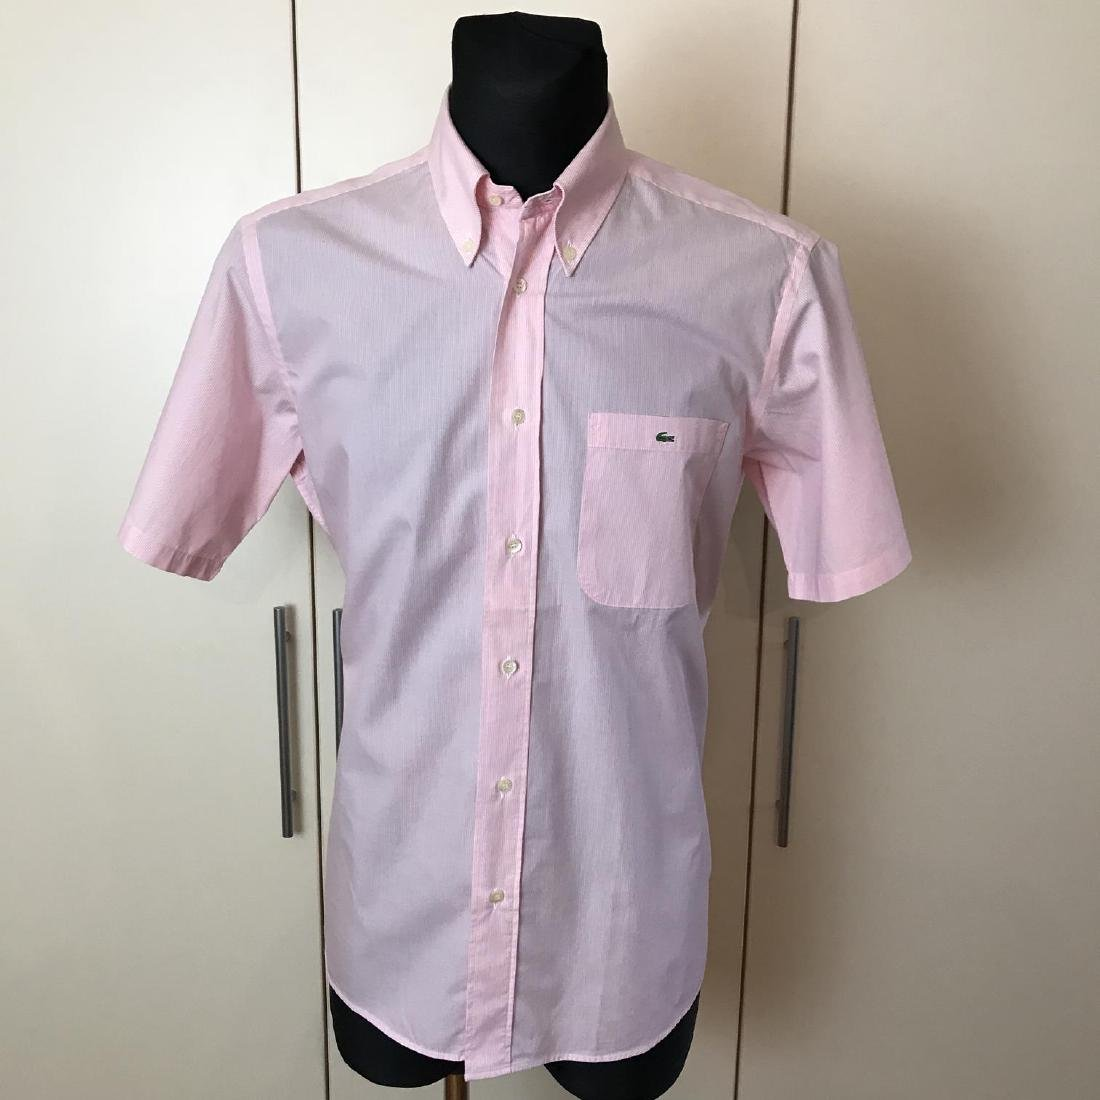 Men's Lacoste Pink Short Sleeve Shirt Top Size US 40